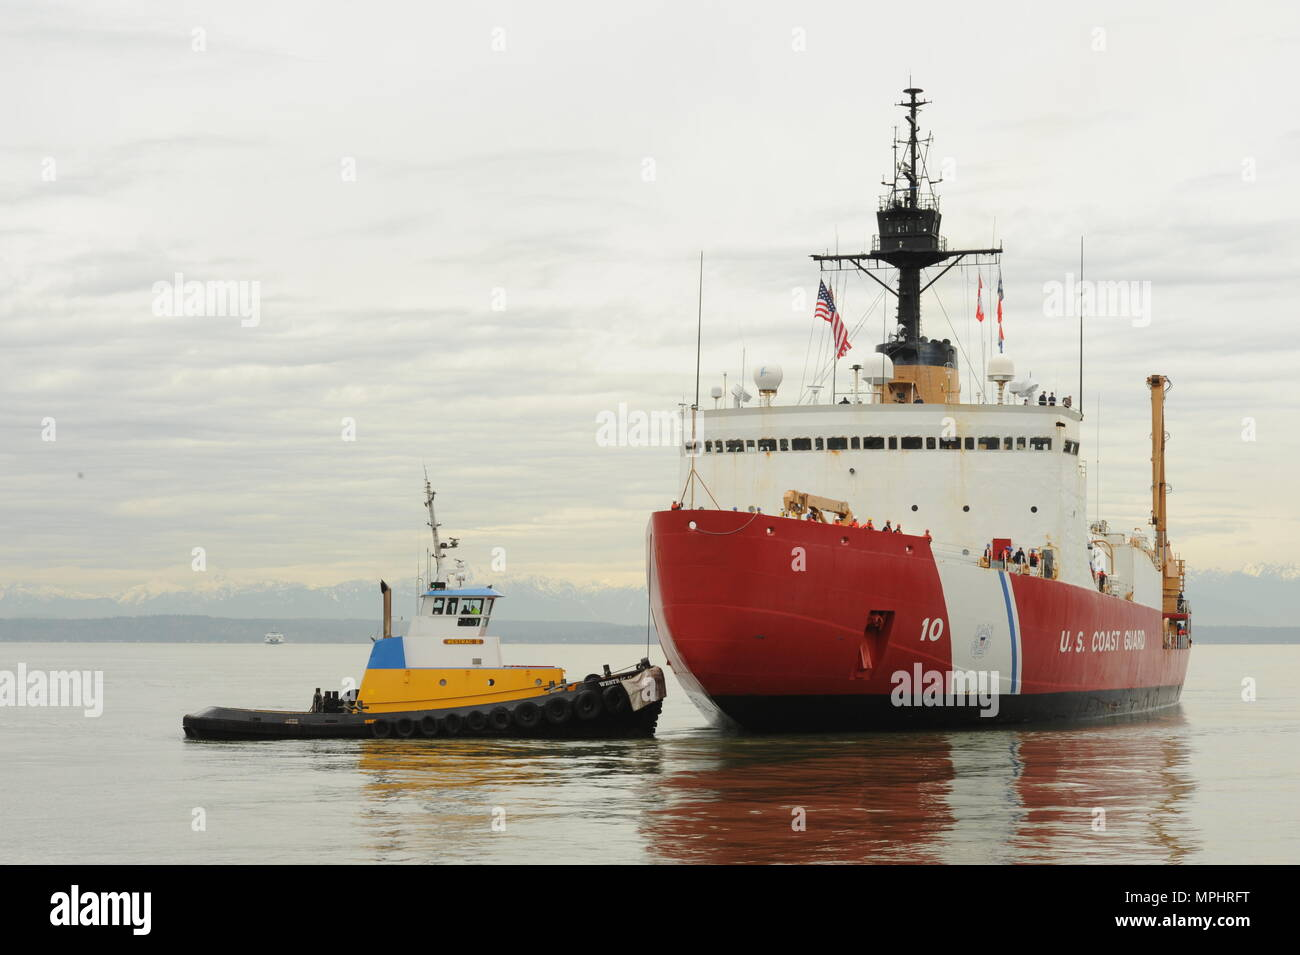 The crew of the Coast Guard Cutter Polar Star, a 399-foot heavy icebreaker, is escorted by the crew of the Westrac II, a 73-foot towing vessel, as they moor to Pier 66 in Seattle, March 17, 2017.    The crew returned from a 107-day expedition to Antartica, which involved maintaining the decades-old icebreaker to ensure a year's worth of supplies and fuel safely reached the National Science Foundation's McMurdo and Amundsen-Scott South Pole stations.    U.S. Coast Guard photo by Petty Officer 3rd Class Amanda Norcross. - Stock Image